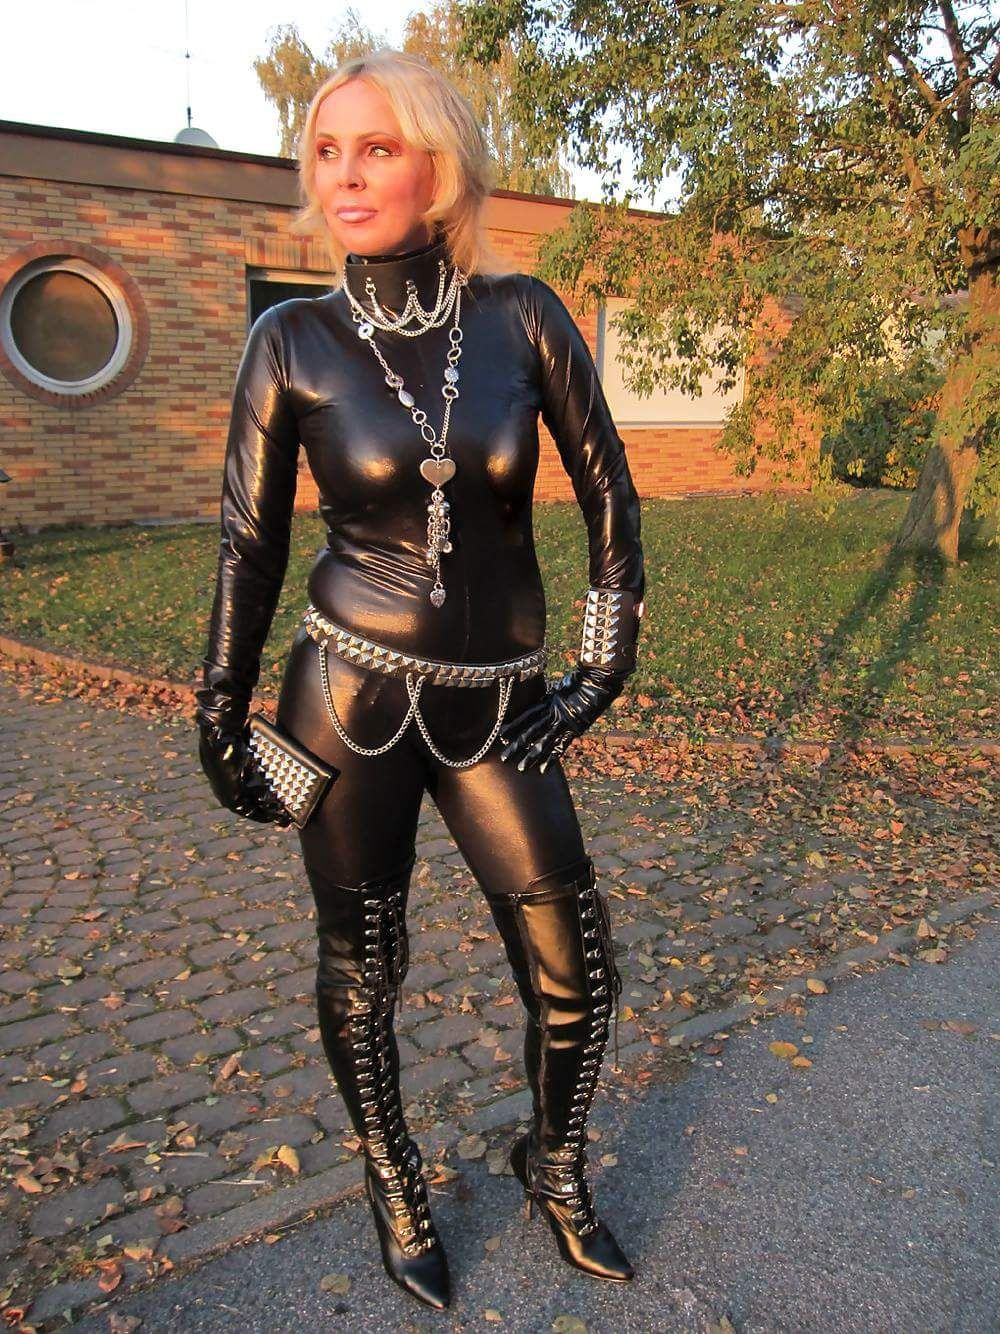 Moms in latex